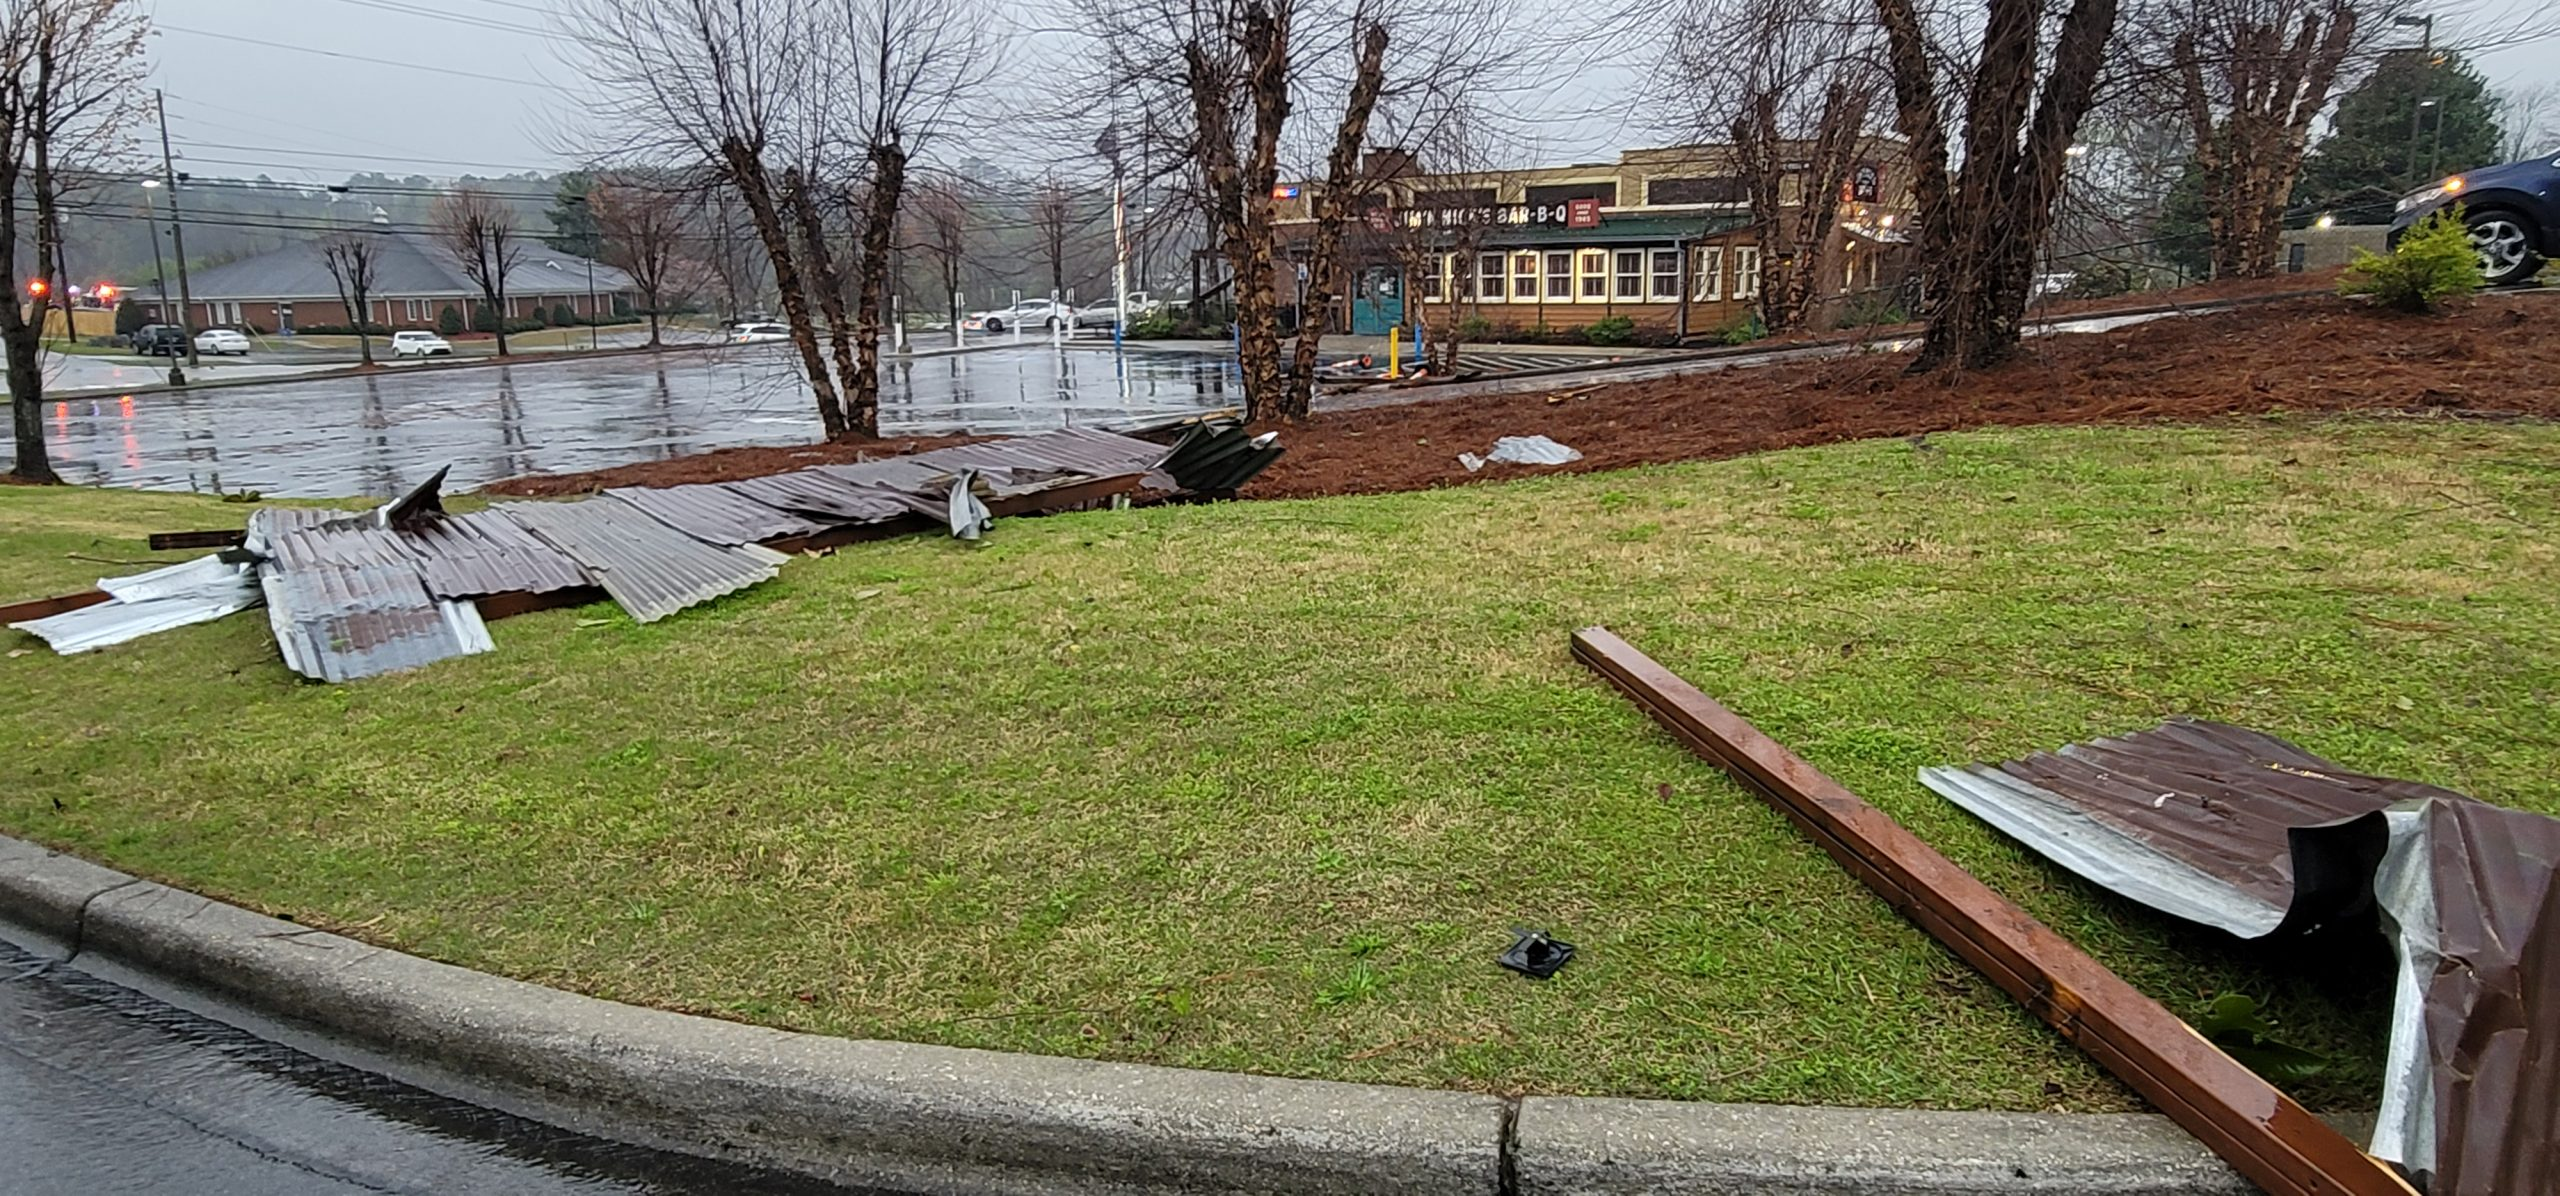 PHOTOS: Damage reported in Trussville; Roads blocked from downed trees